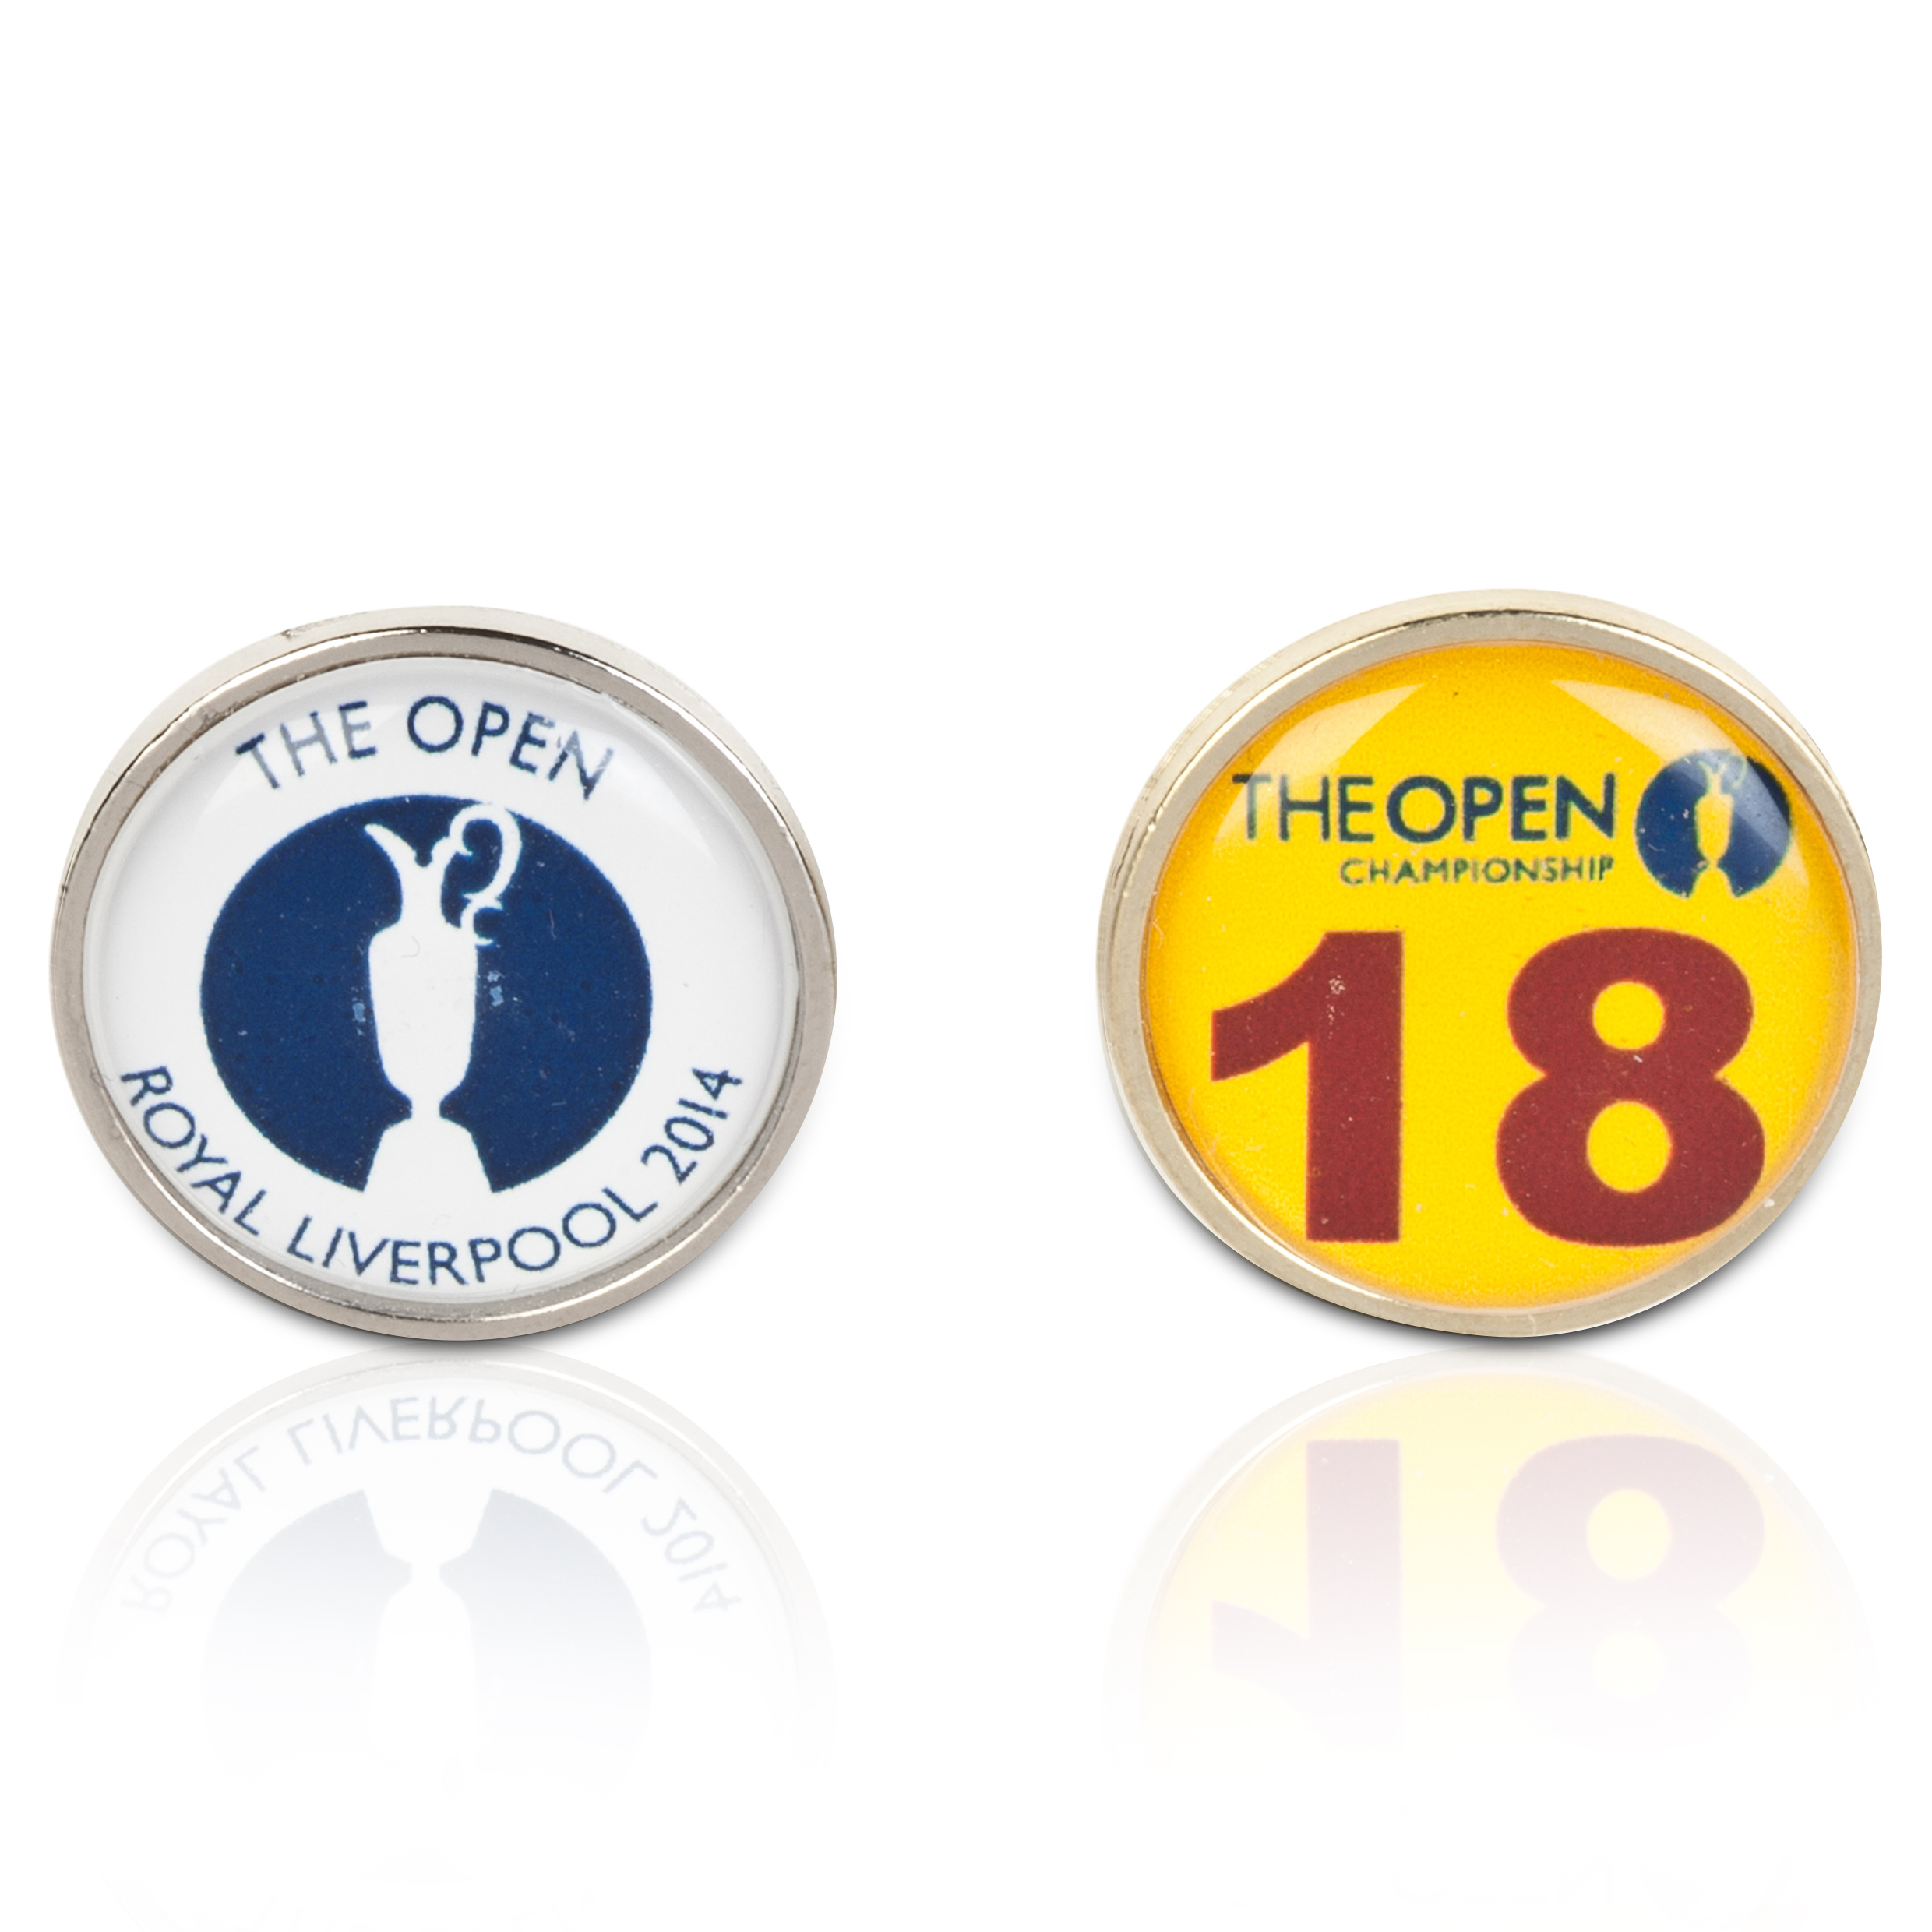 The Open Championship Royal Liverpool 2014 Ballmarkers